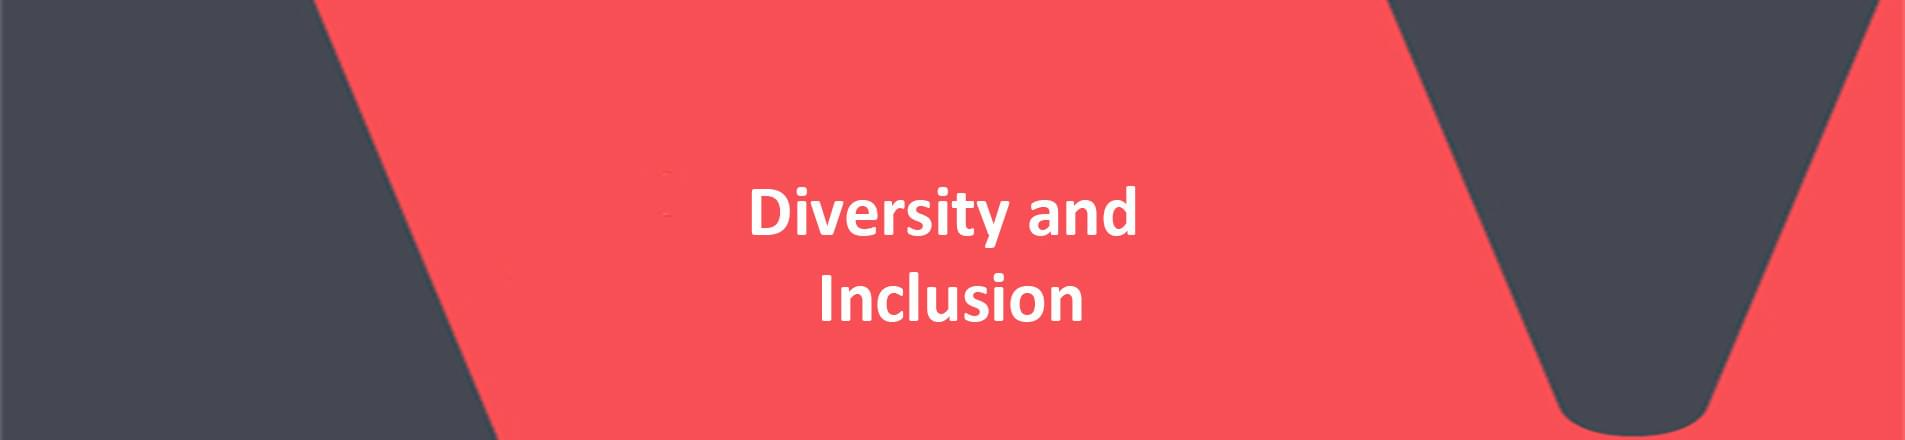 "Image VERCIDA banner. Red background with words ""Diversity and Inclusion"" spelled in white letters."